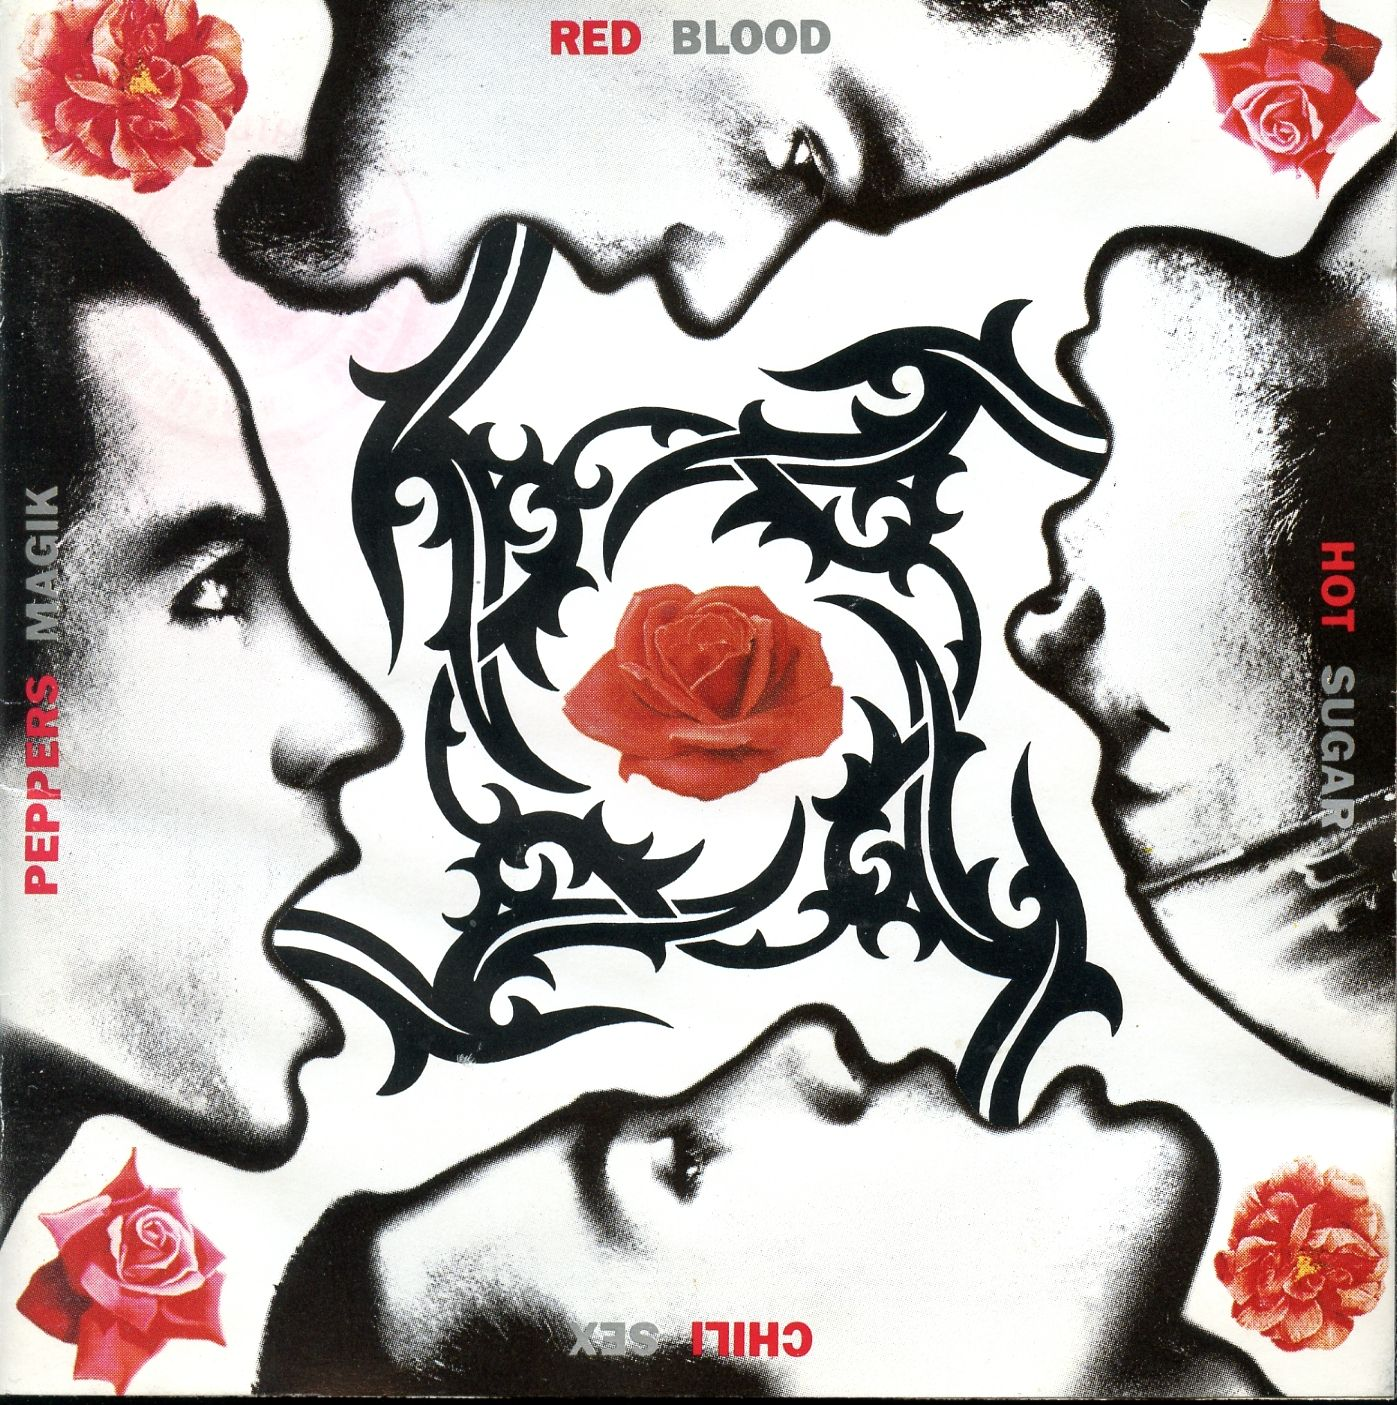 red hot chili peppers blood sugar sex magik album